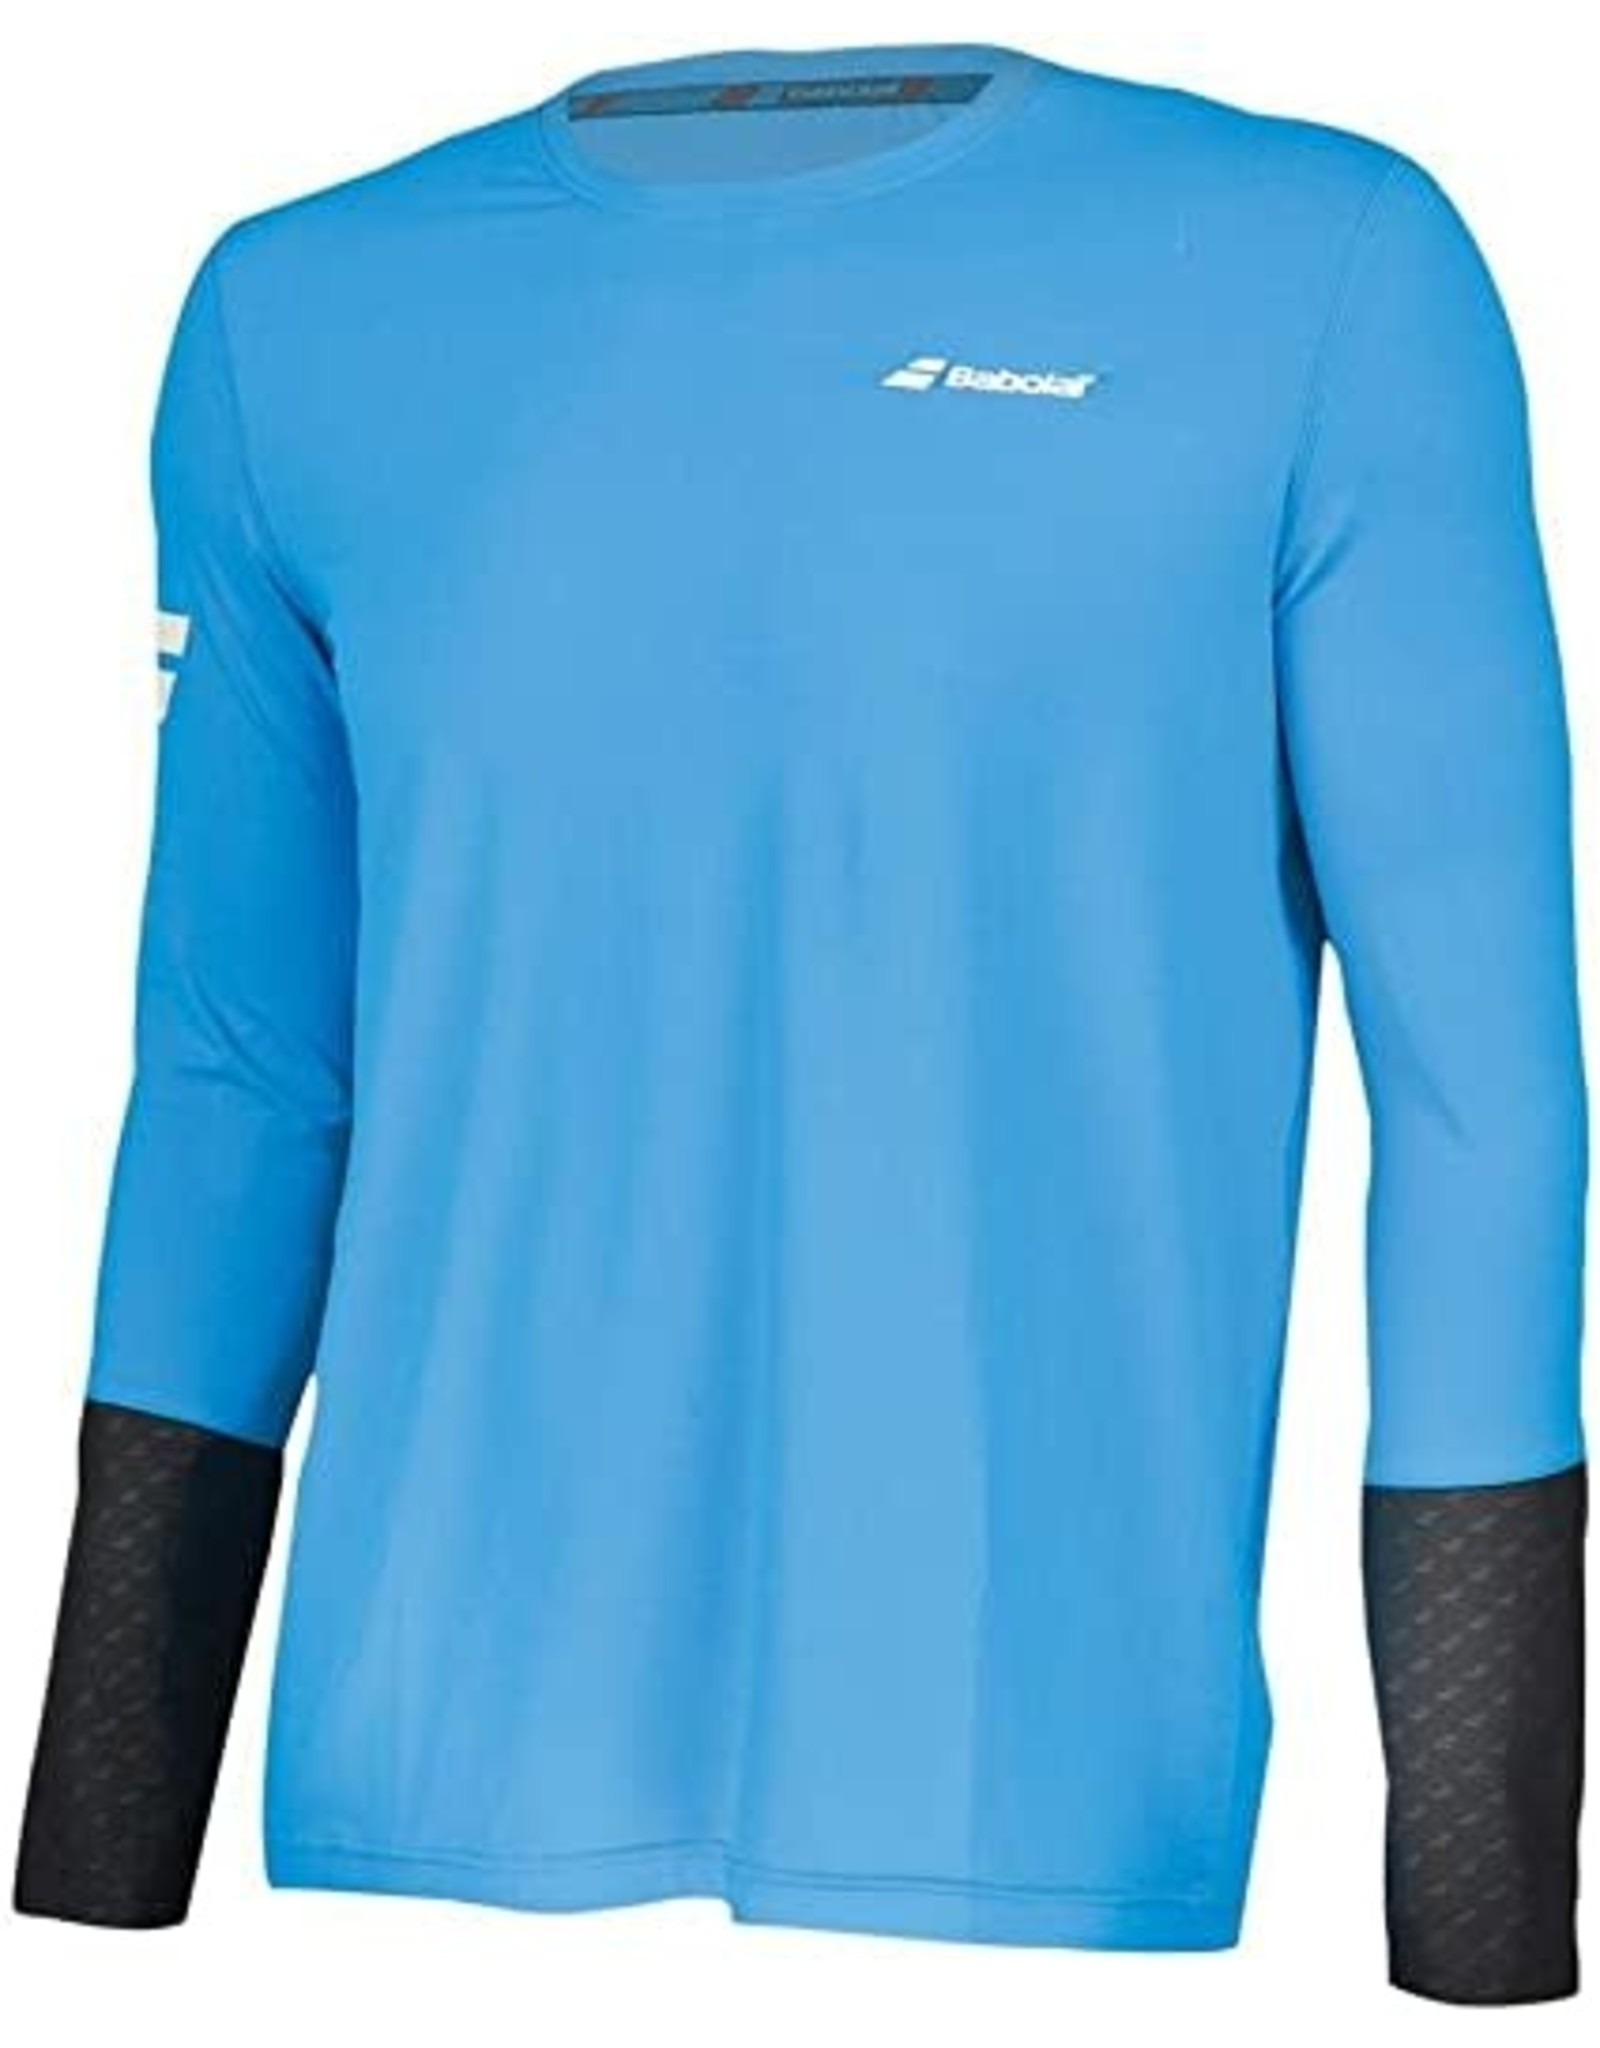 Babolat Core Long Sleeve Top (XL) WHITE